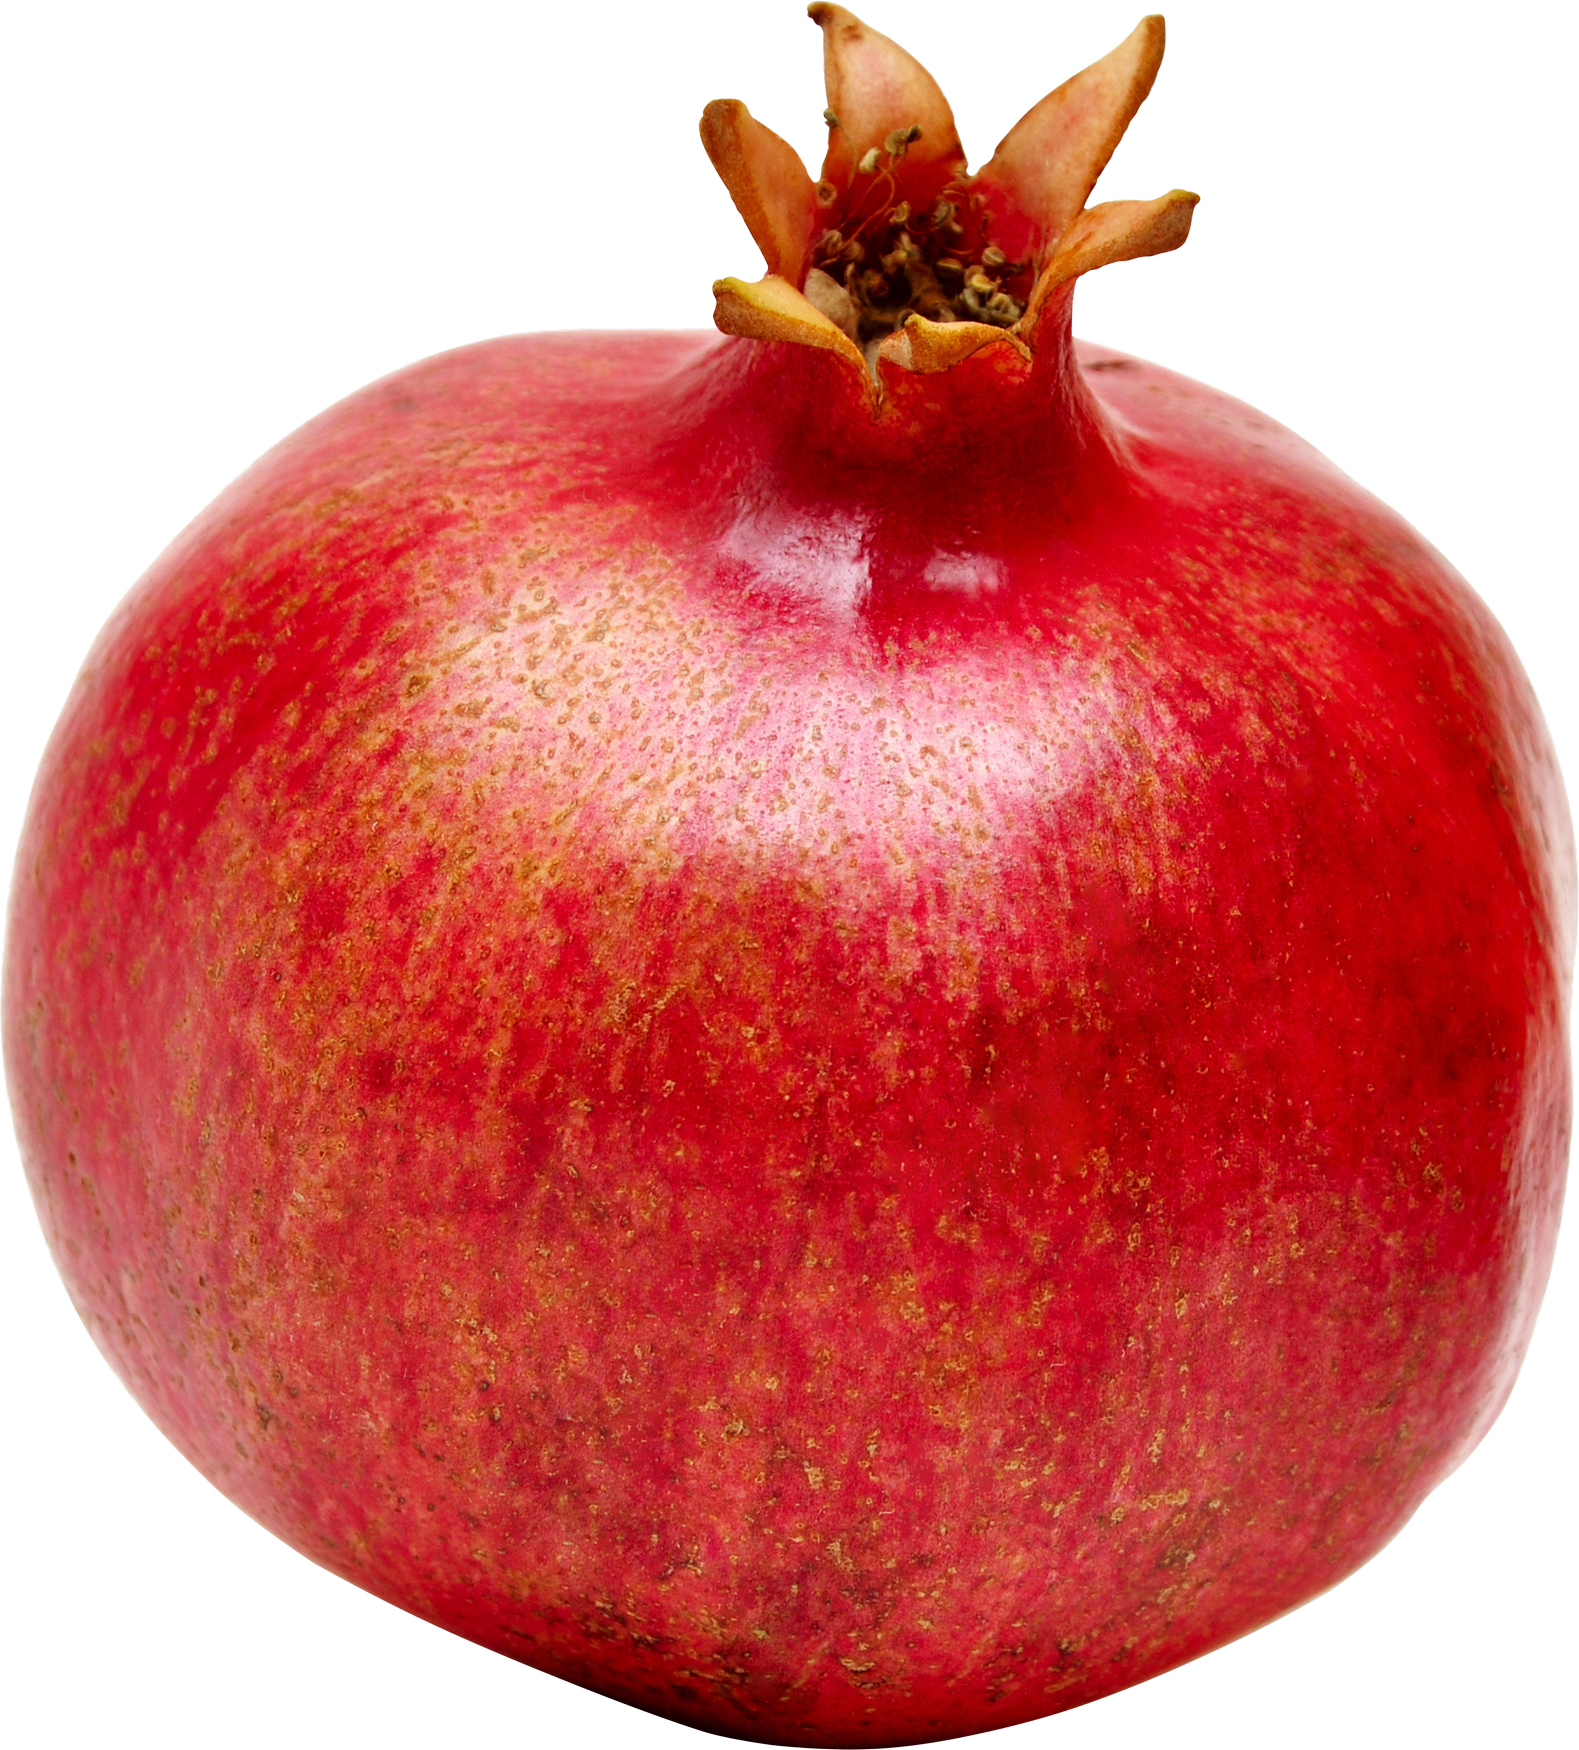 Pomegranate clipart high resolution. Png image purepng free